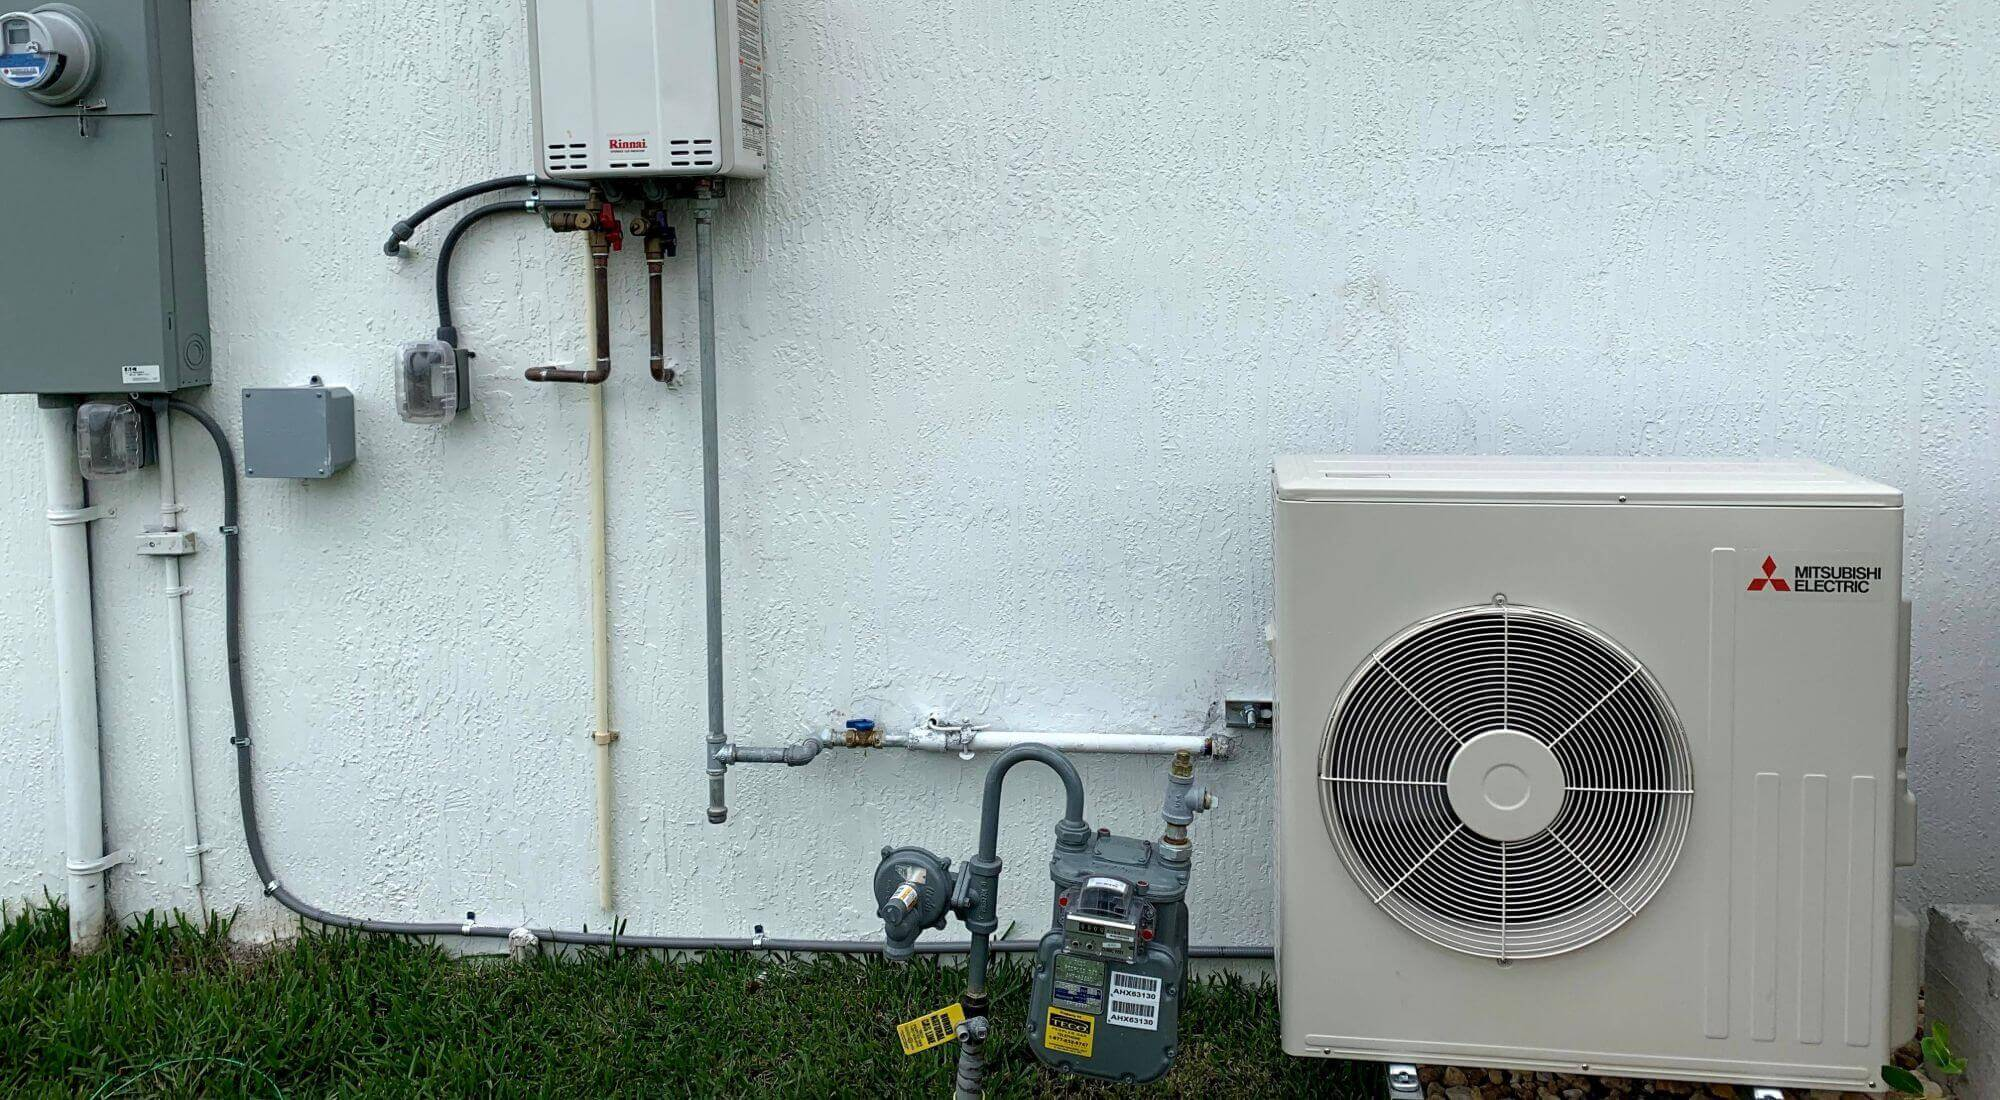 Reliable Ac Services Llc (33)